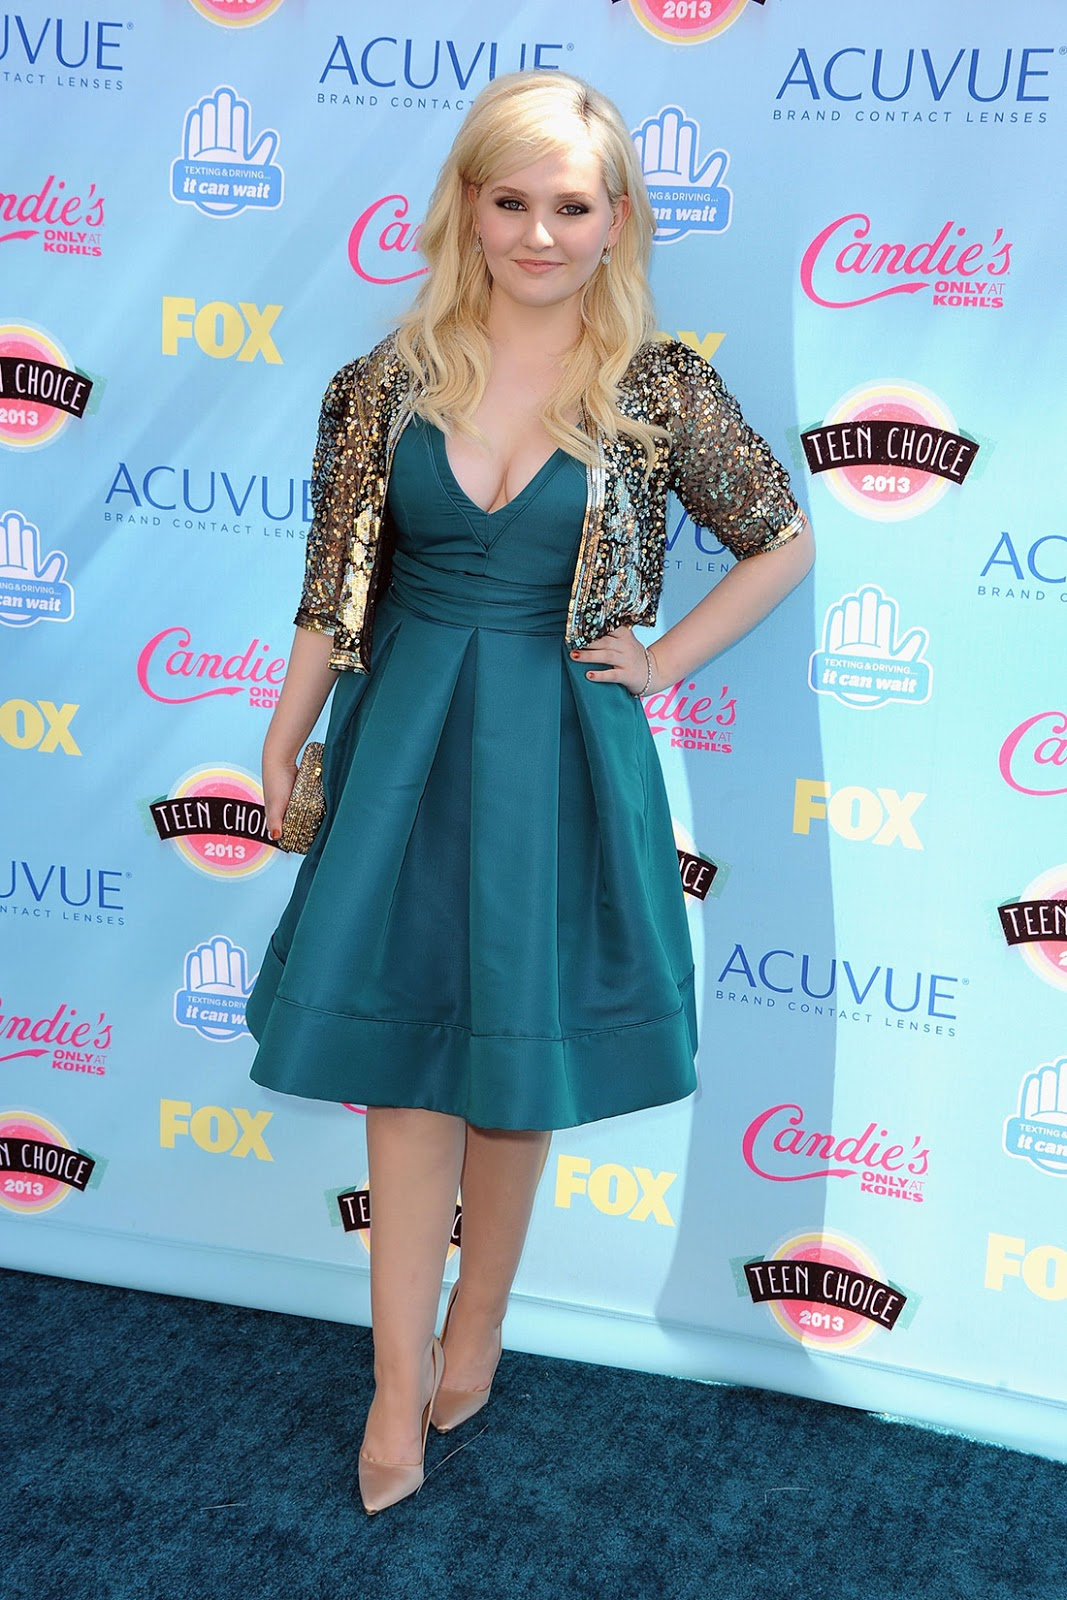 hq celebrity pictures: Abigail Breslin hot pictures